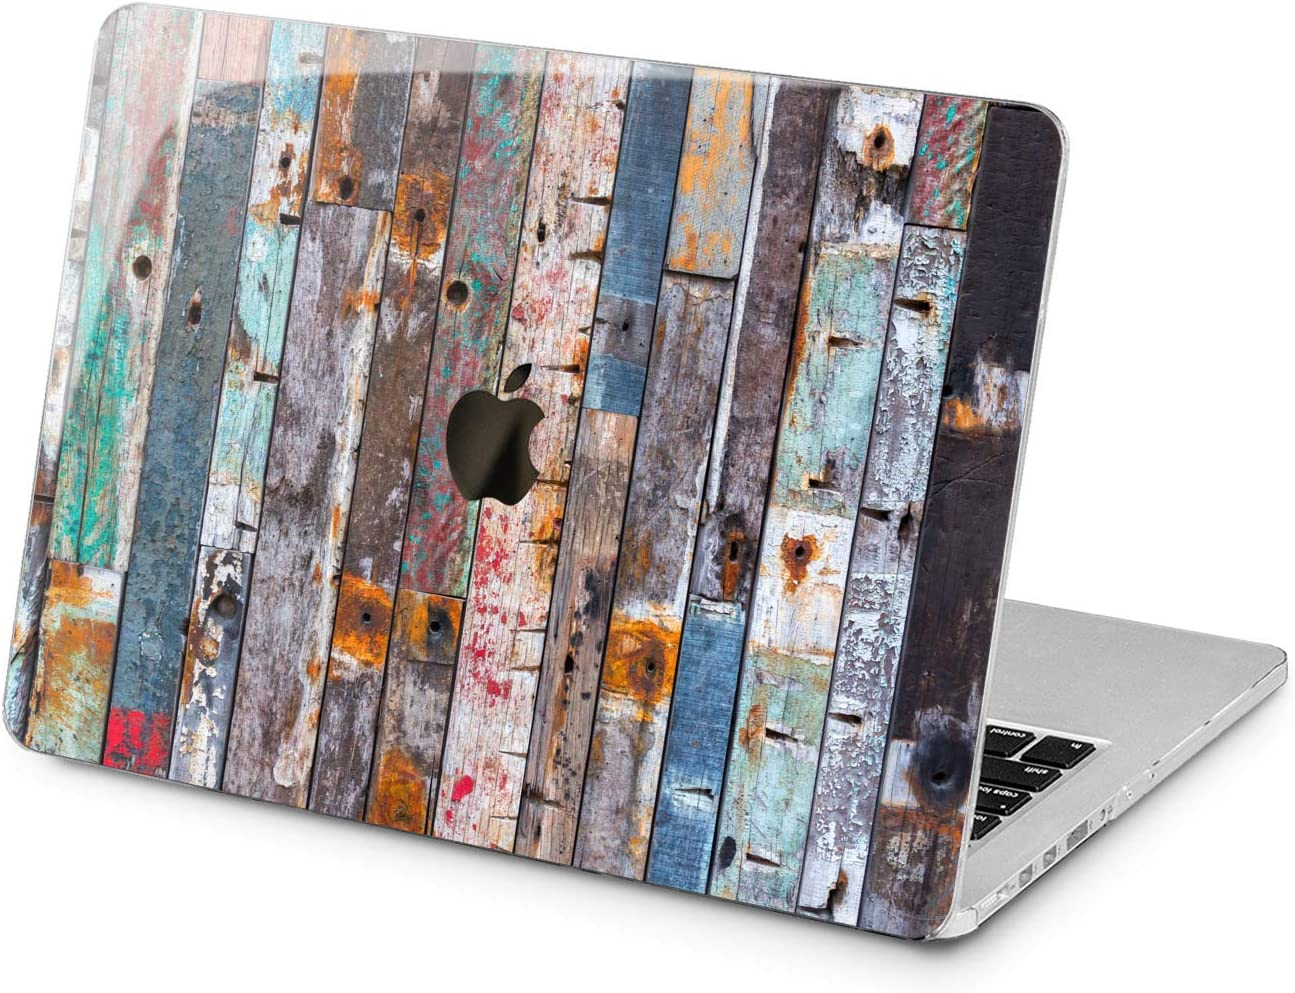 "Cavka Hard Shell Case for Apple MacBook Pro 13"" 2019 15"" 2018 Air 13"" 2020 Retina 2015 Mac 11"" Mac 12"" New Cover Laptop Retro Design Rustic Planks Wood Grunge Print Plastic Protective Colorful Retro"